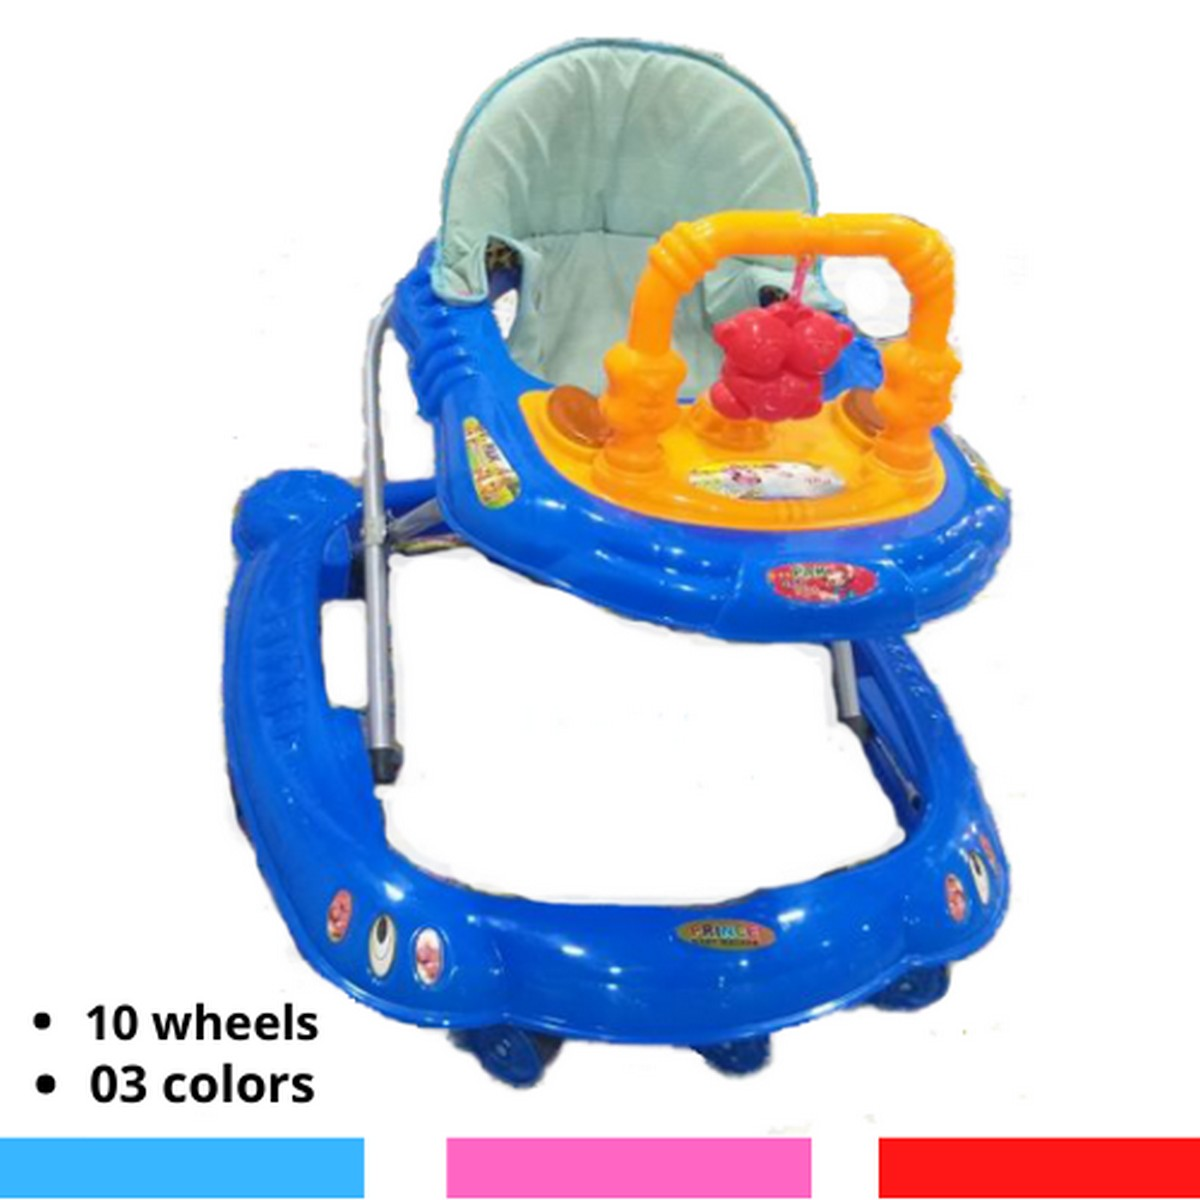 10 Wheel Music Tray Kids Walker  Baby walker with U shaped toy in red 03 colors